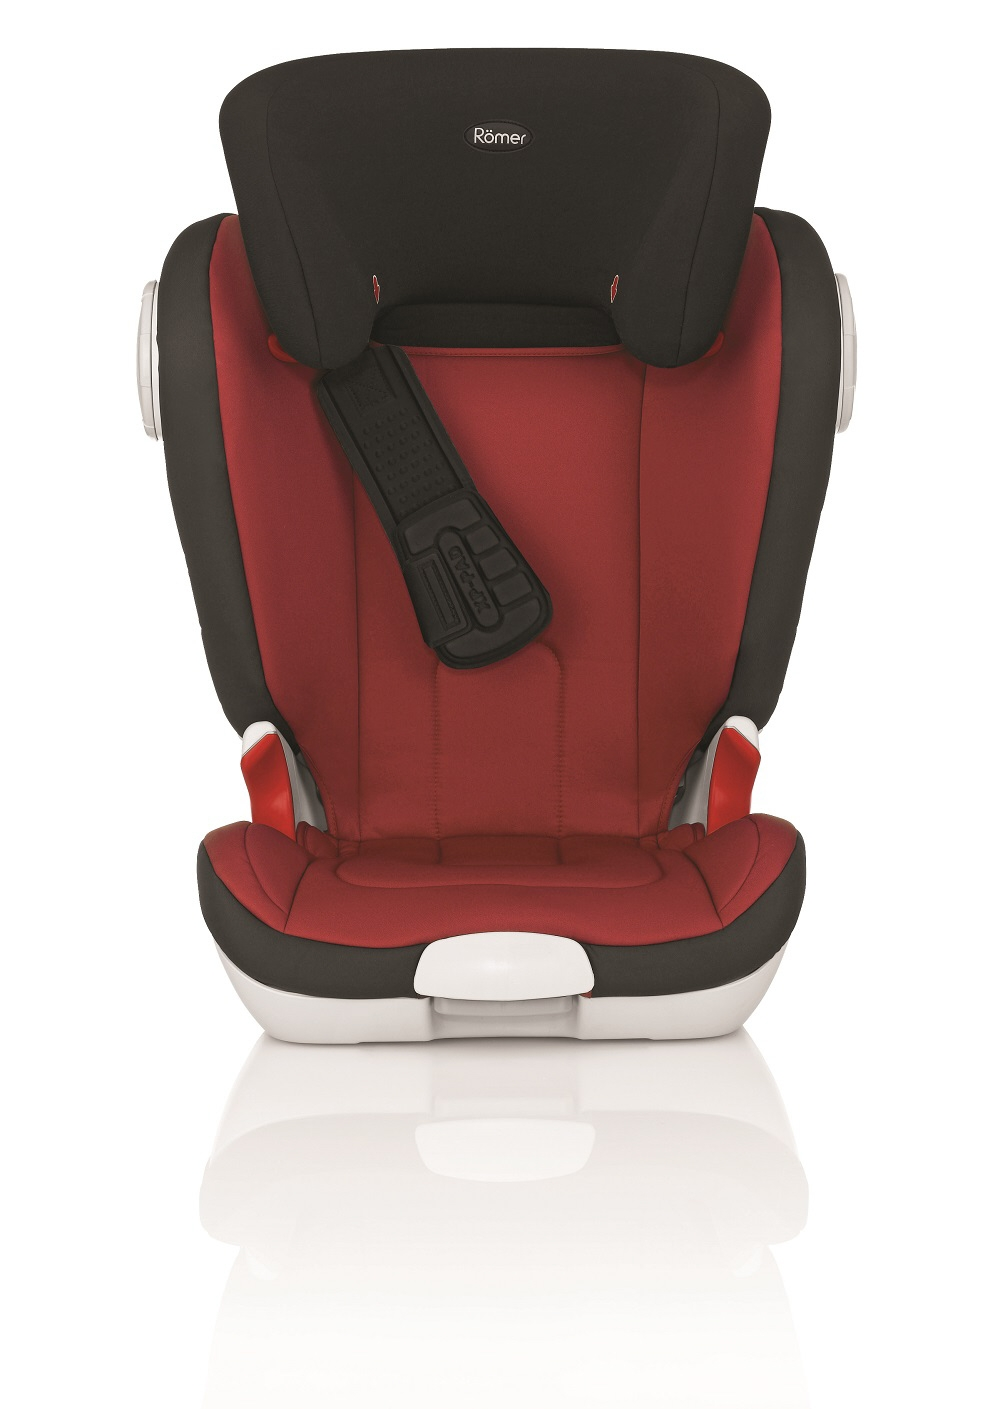 britax r mer car seat kidfix xp sict 2015 chili pepper buy at kidsroom car seats. Black Bedroom Furniture Sets. Home Design Ideas